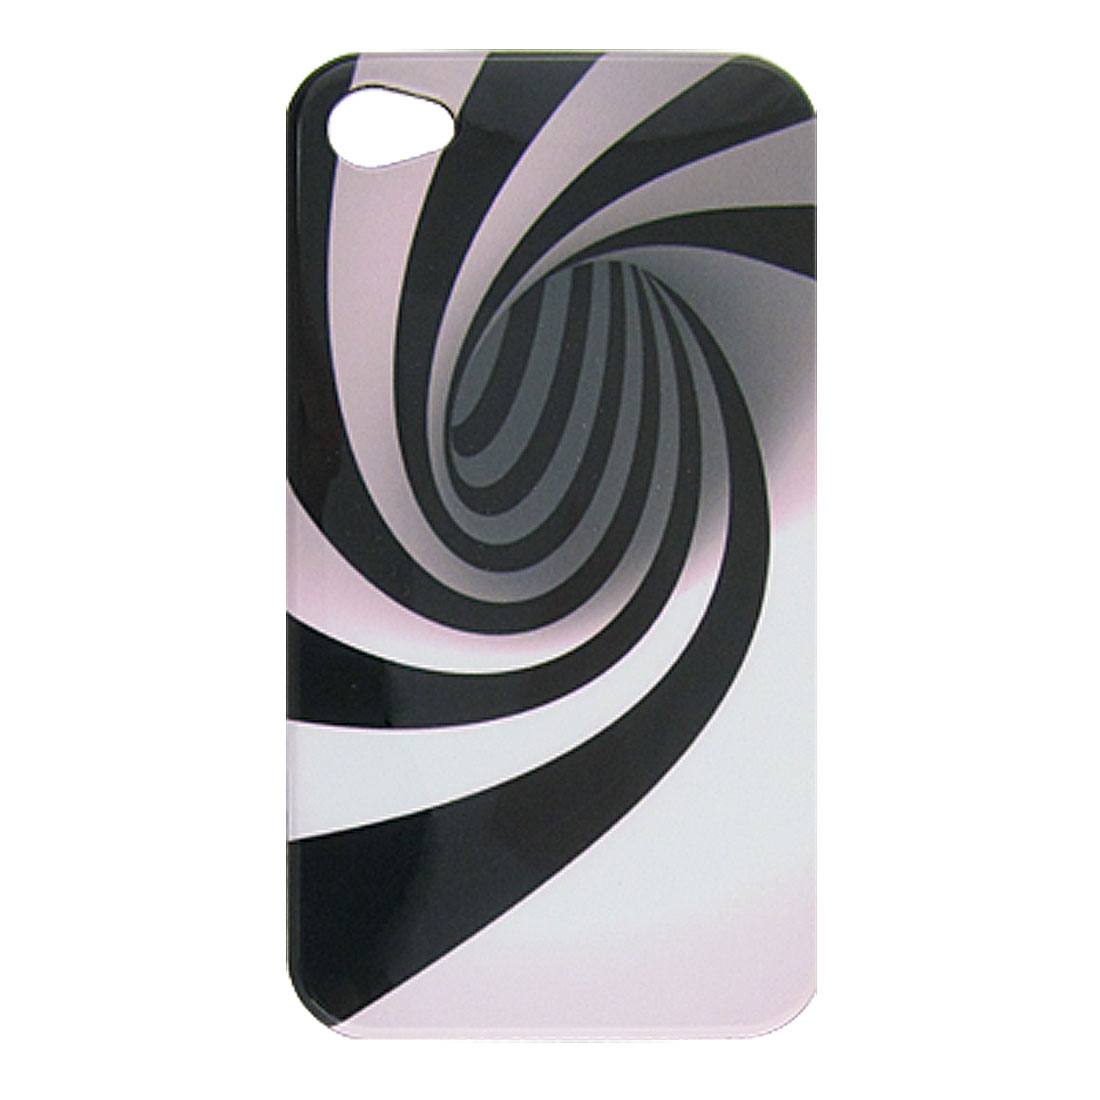 Swirl Black Stripe Plastic Back Cover for iPhone 4 4G